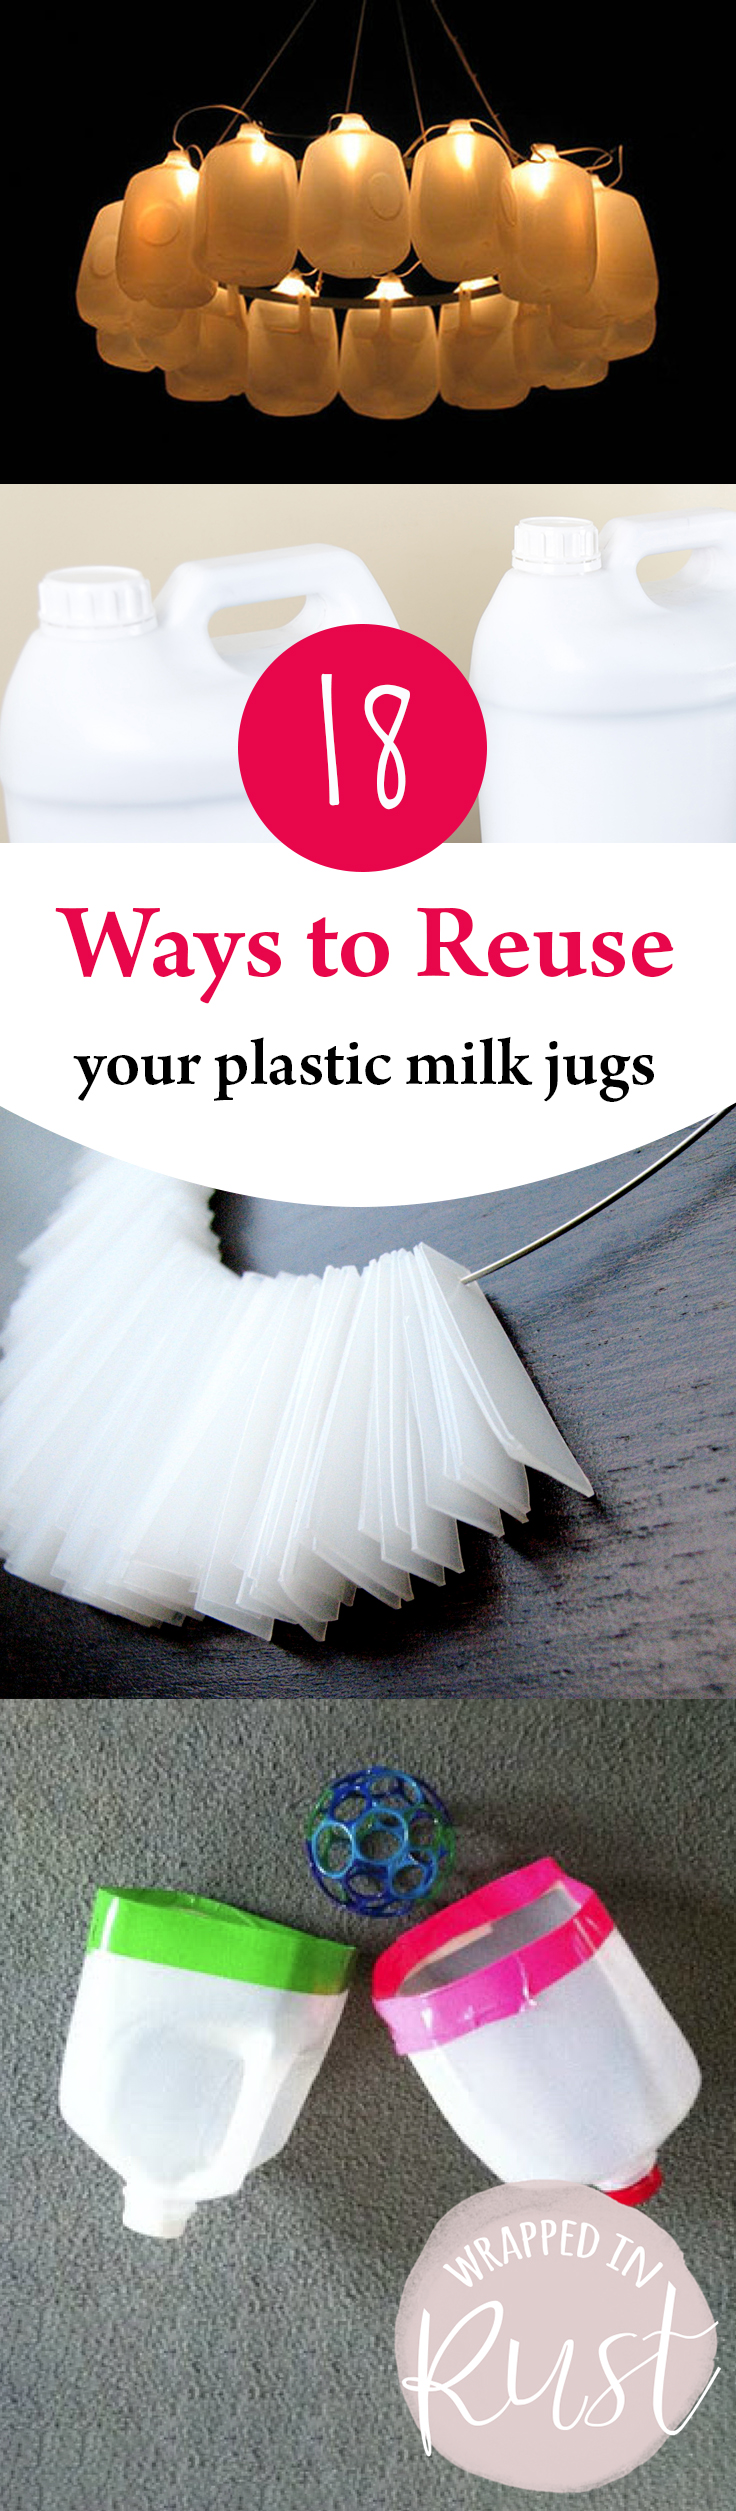 ways to reuse plastic milk jugs and bottles